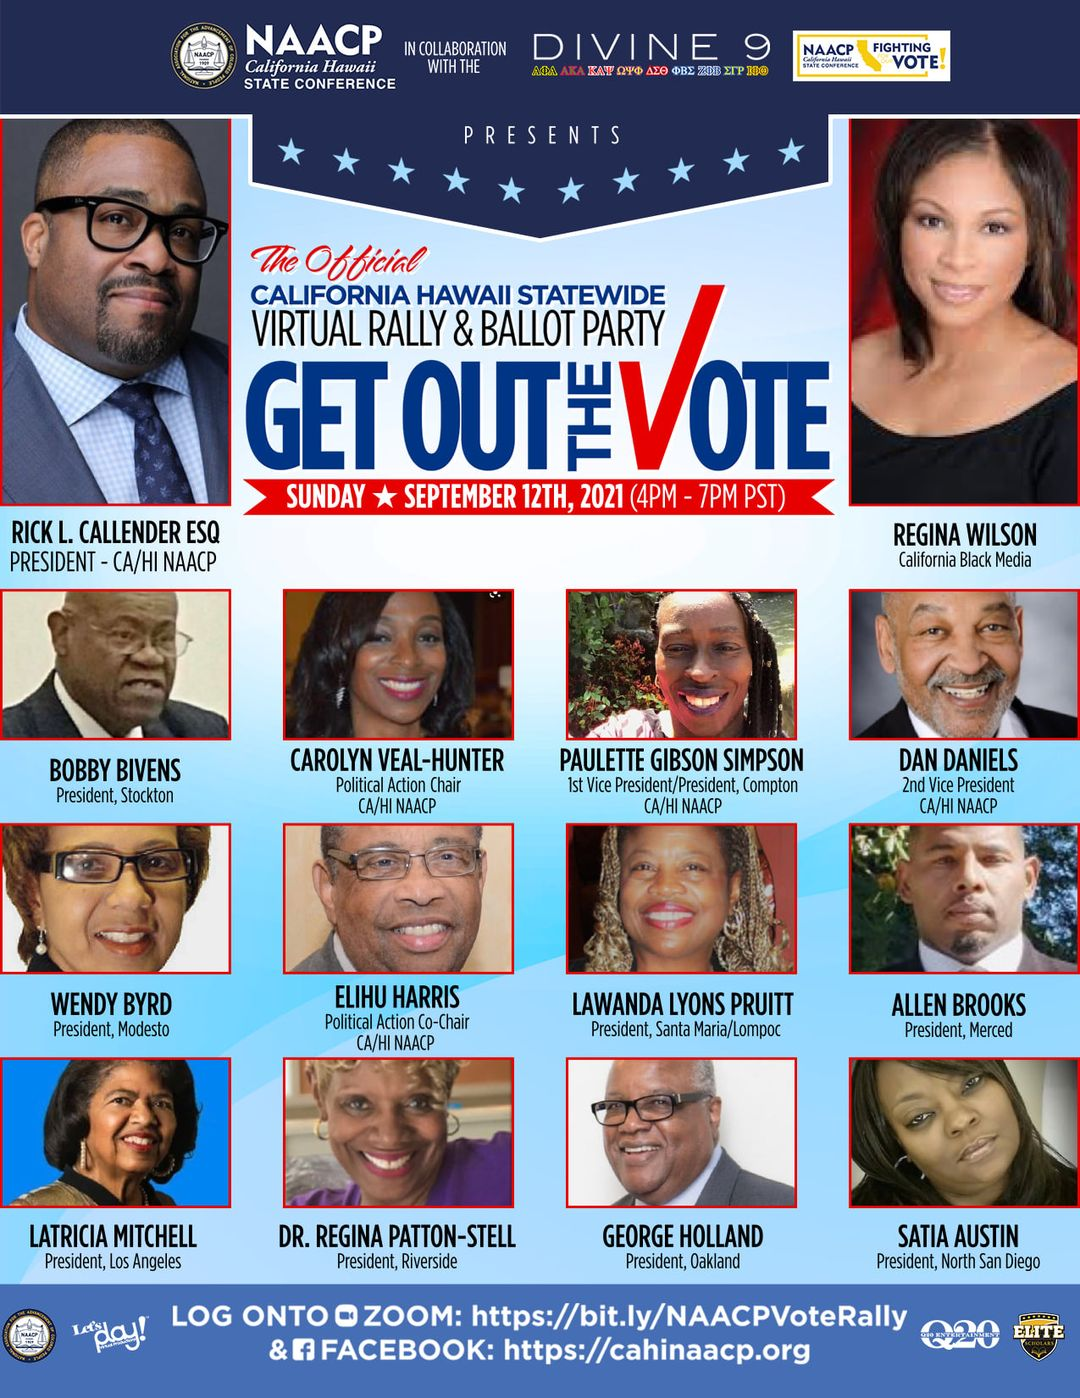 NAACP voting event flyer